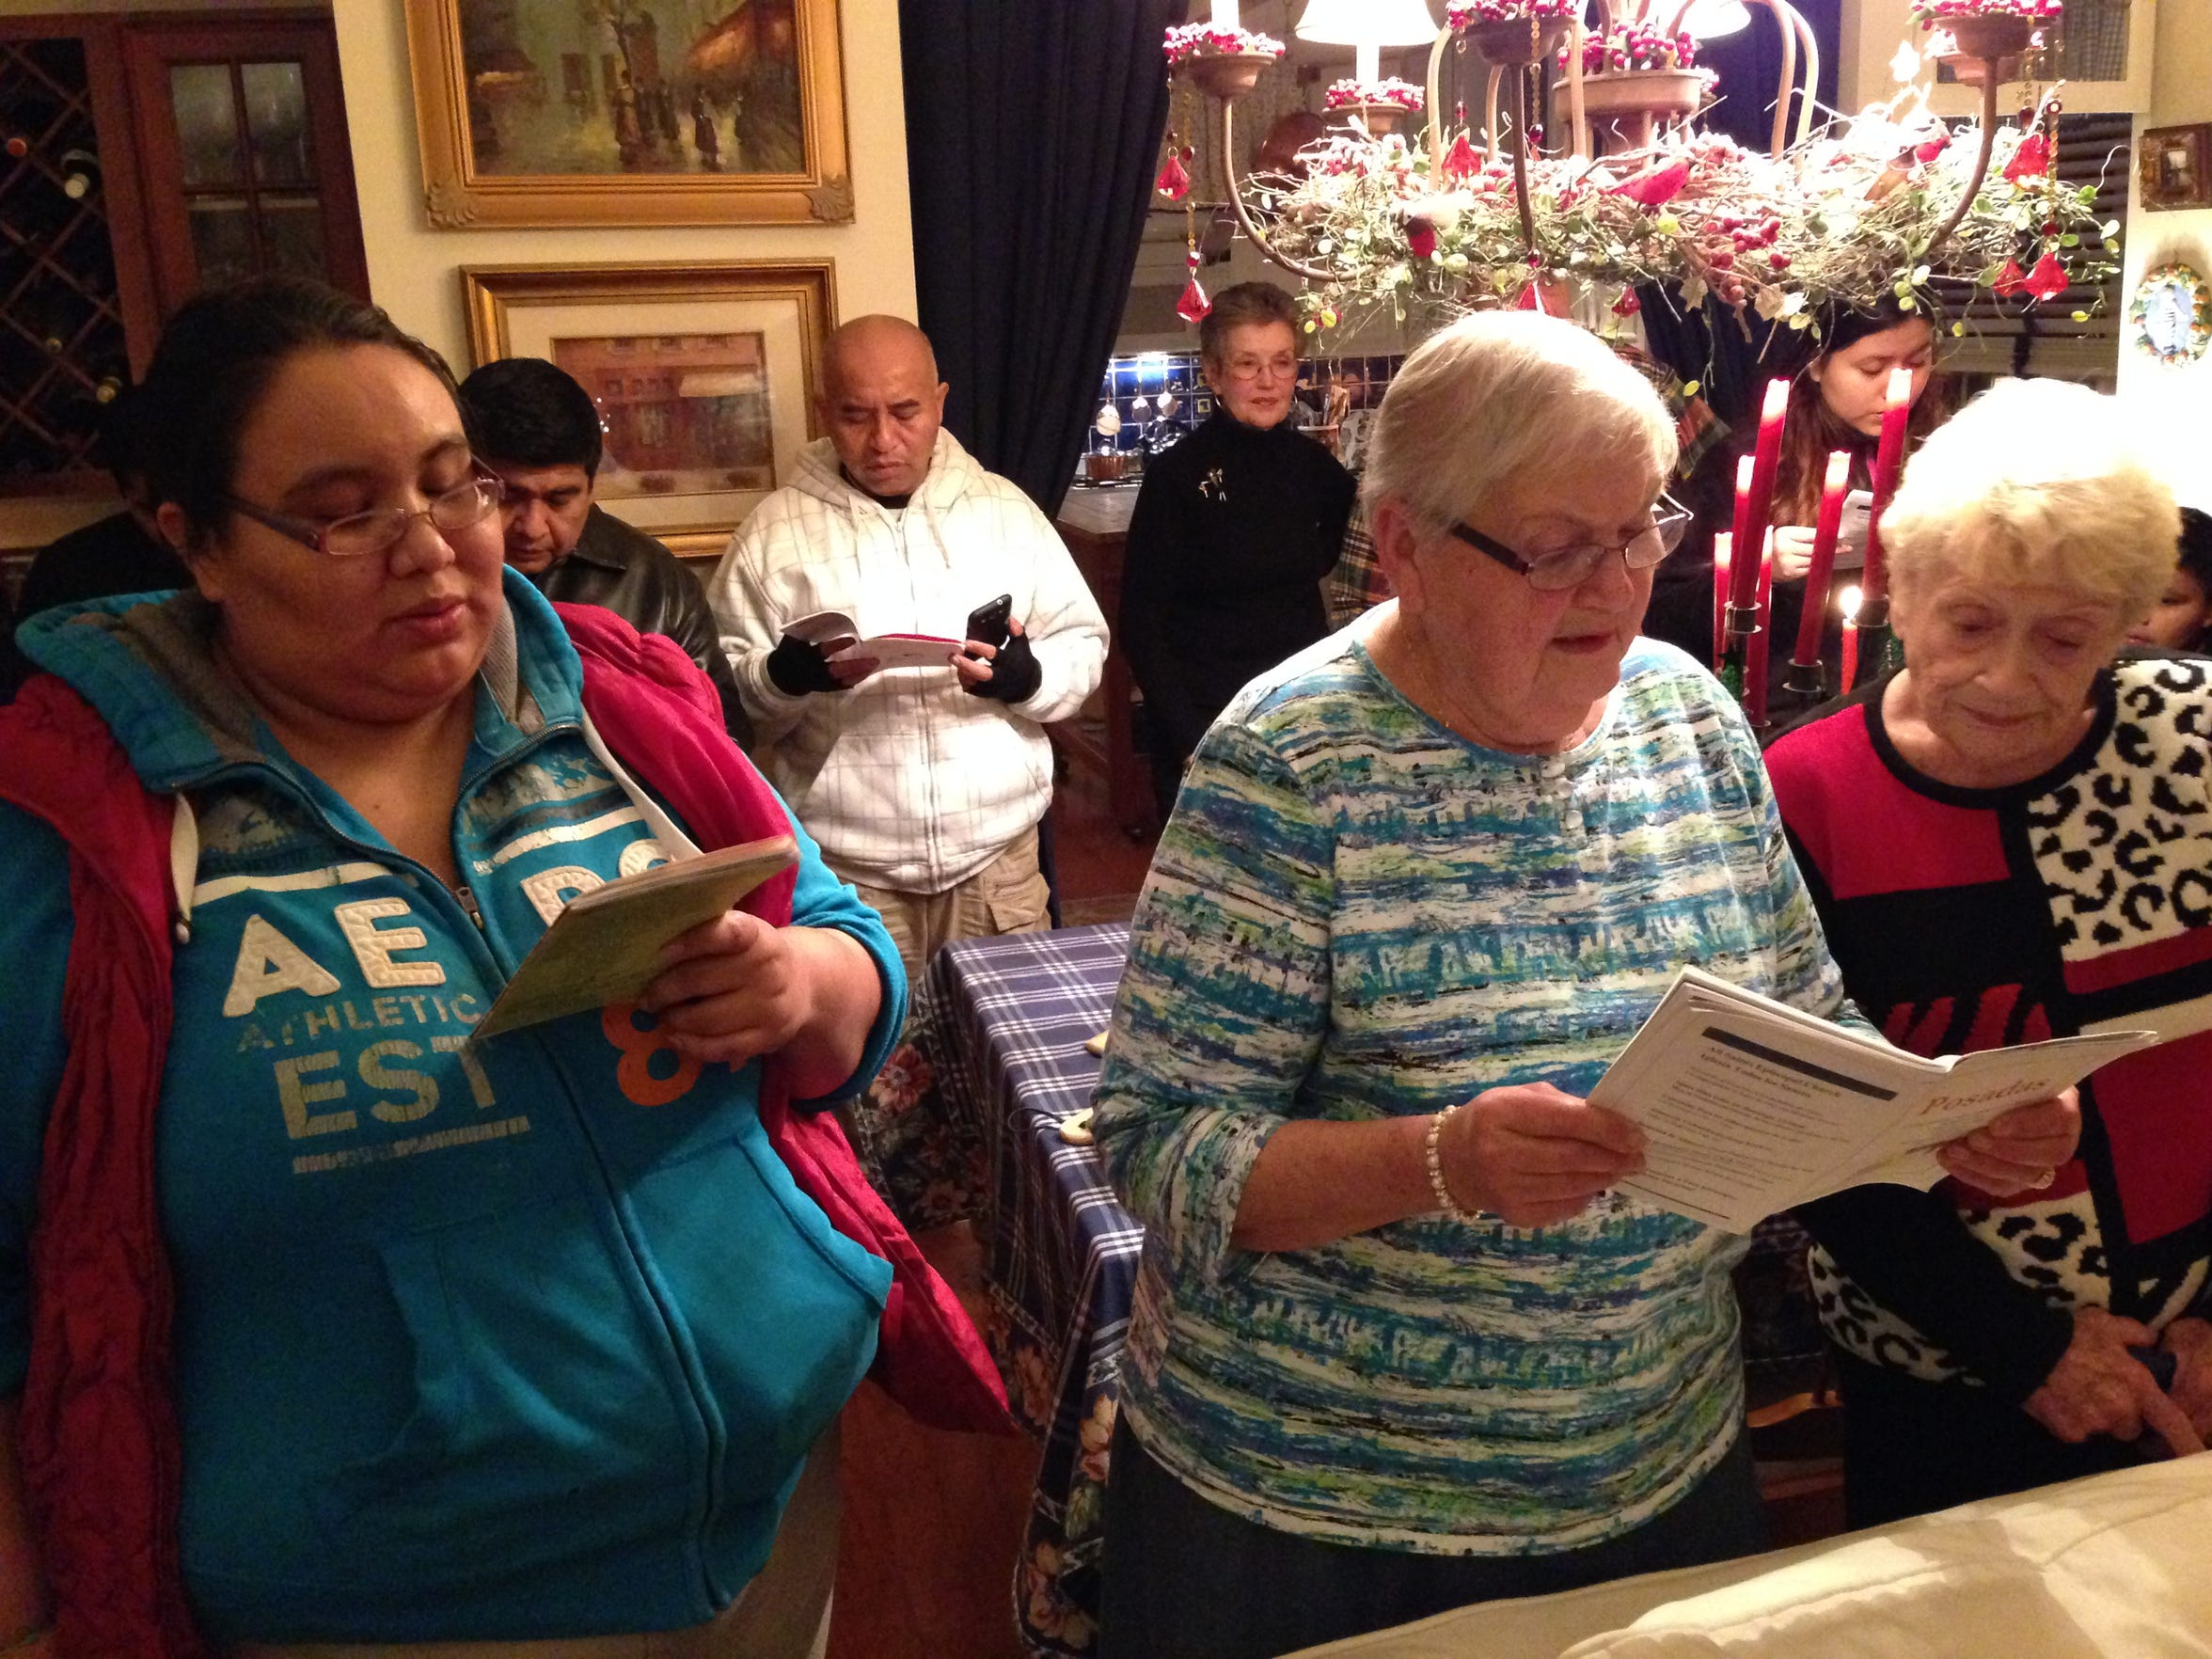 Laura Campos, left, of Jackson, sings during the Las Posadas ceremony on Dec. 17, 2015 beside Irene Slamka (center) and Connie Beckman, both of Brick.